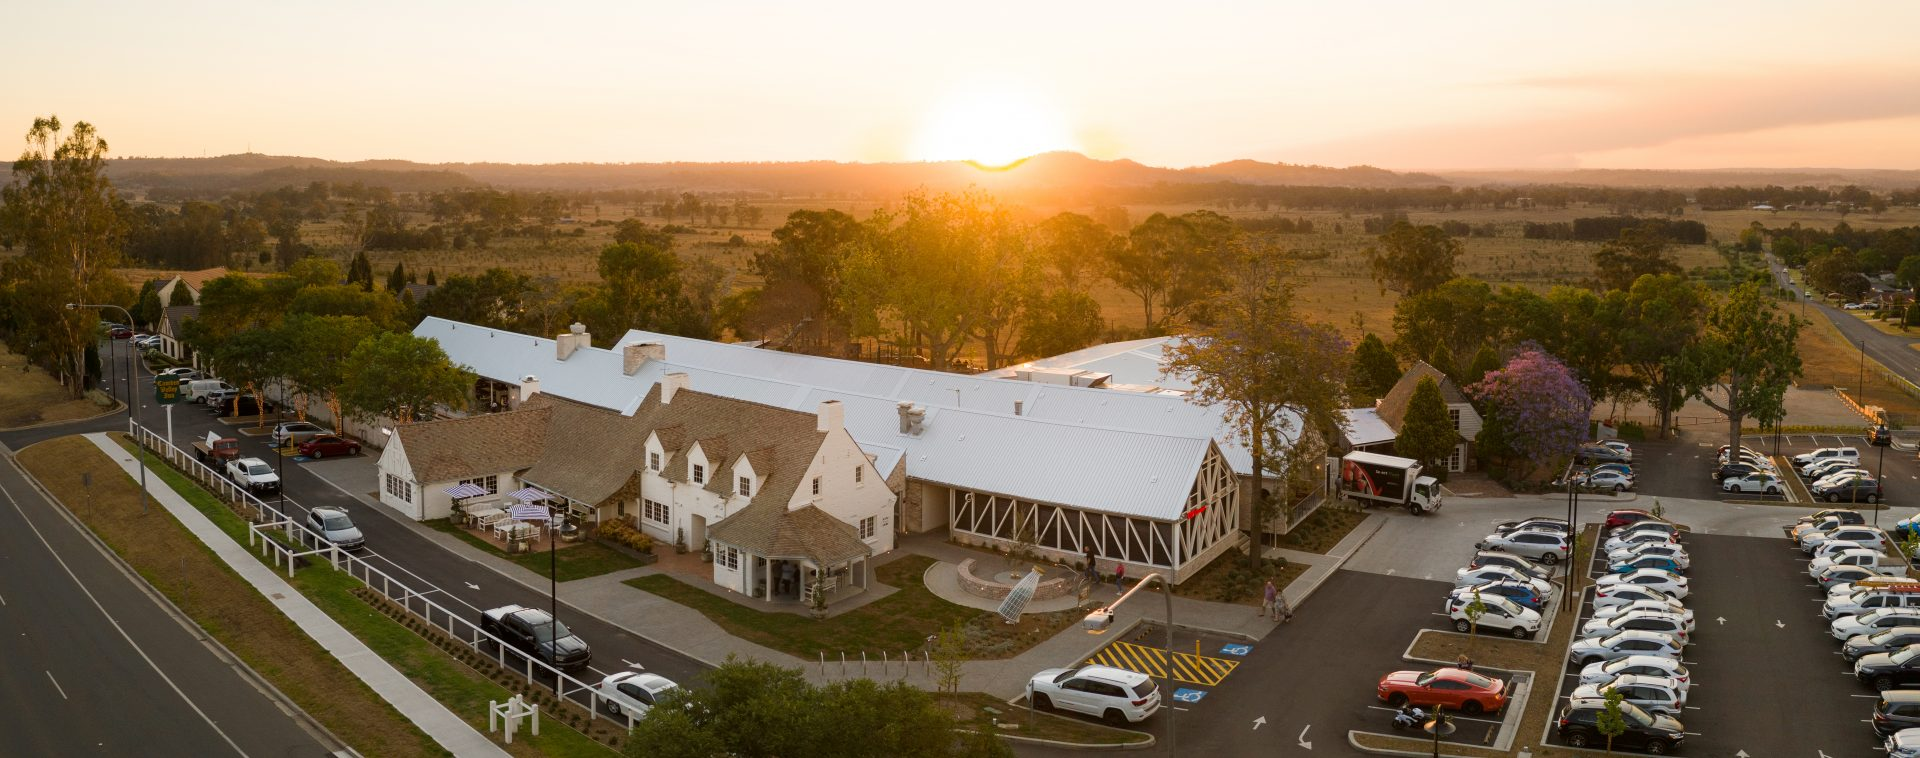 Camden, hotel, accommodation, sydney accommodation, Narellan, Campbelltown, Country Location, country scenery, Views. country views